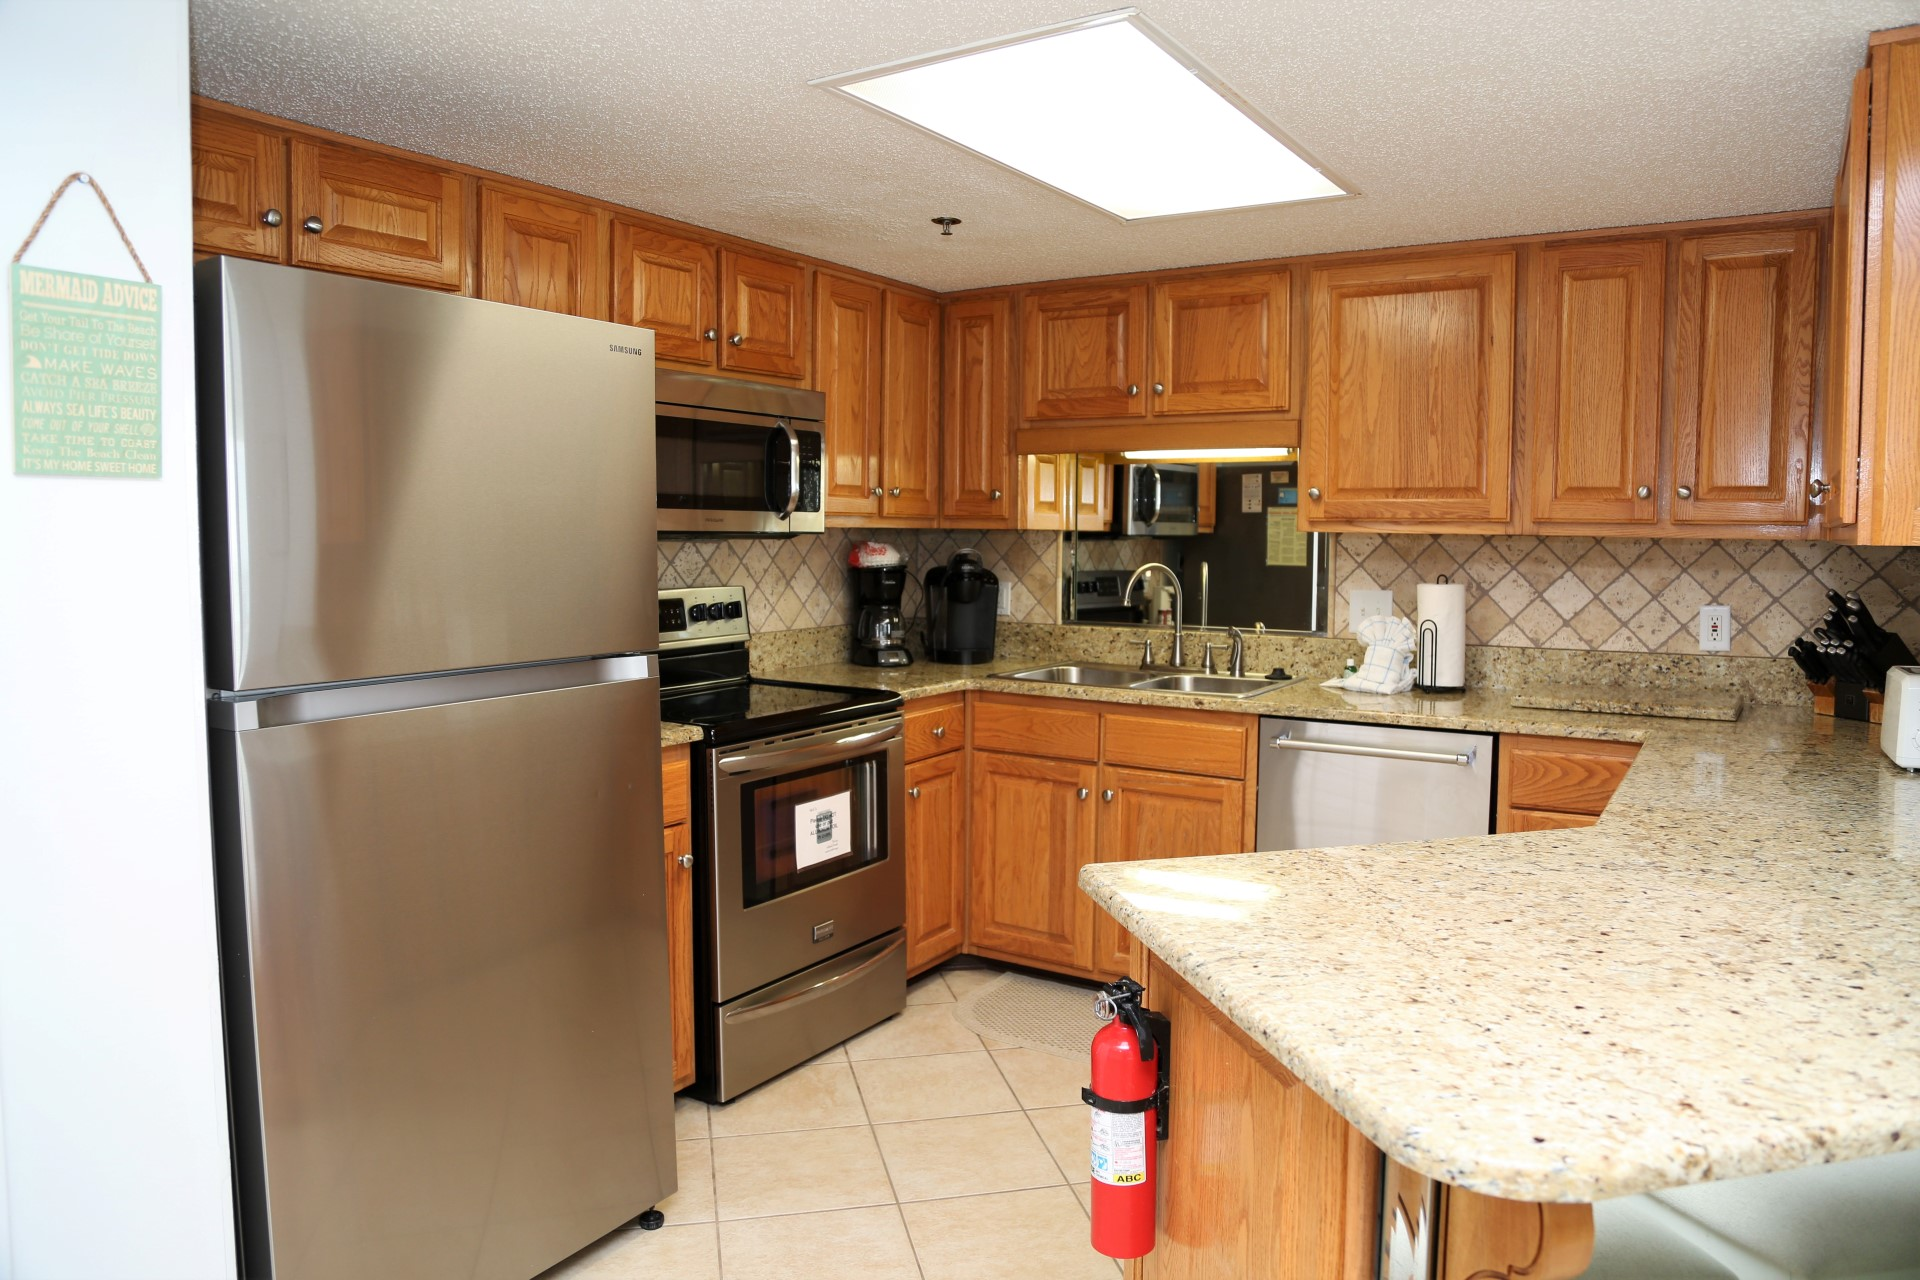 Fully equipped, updated kitchen with quality stainless steel